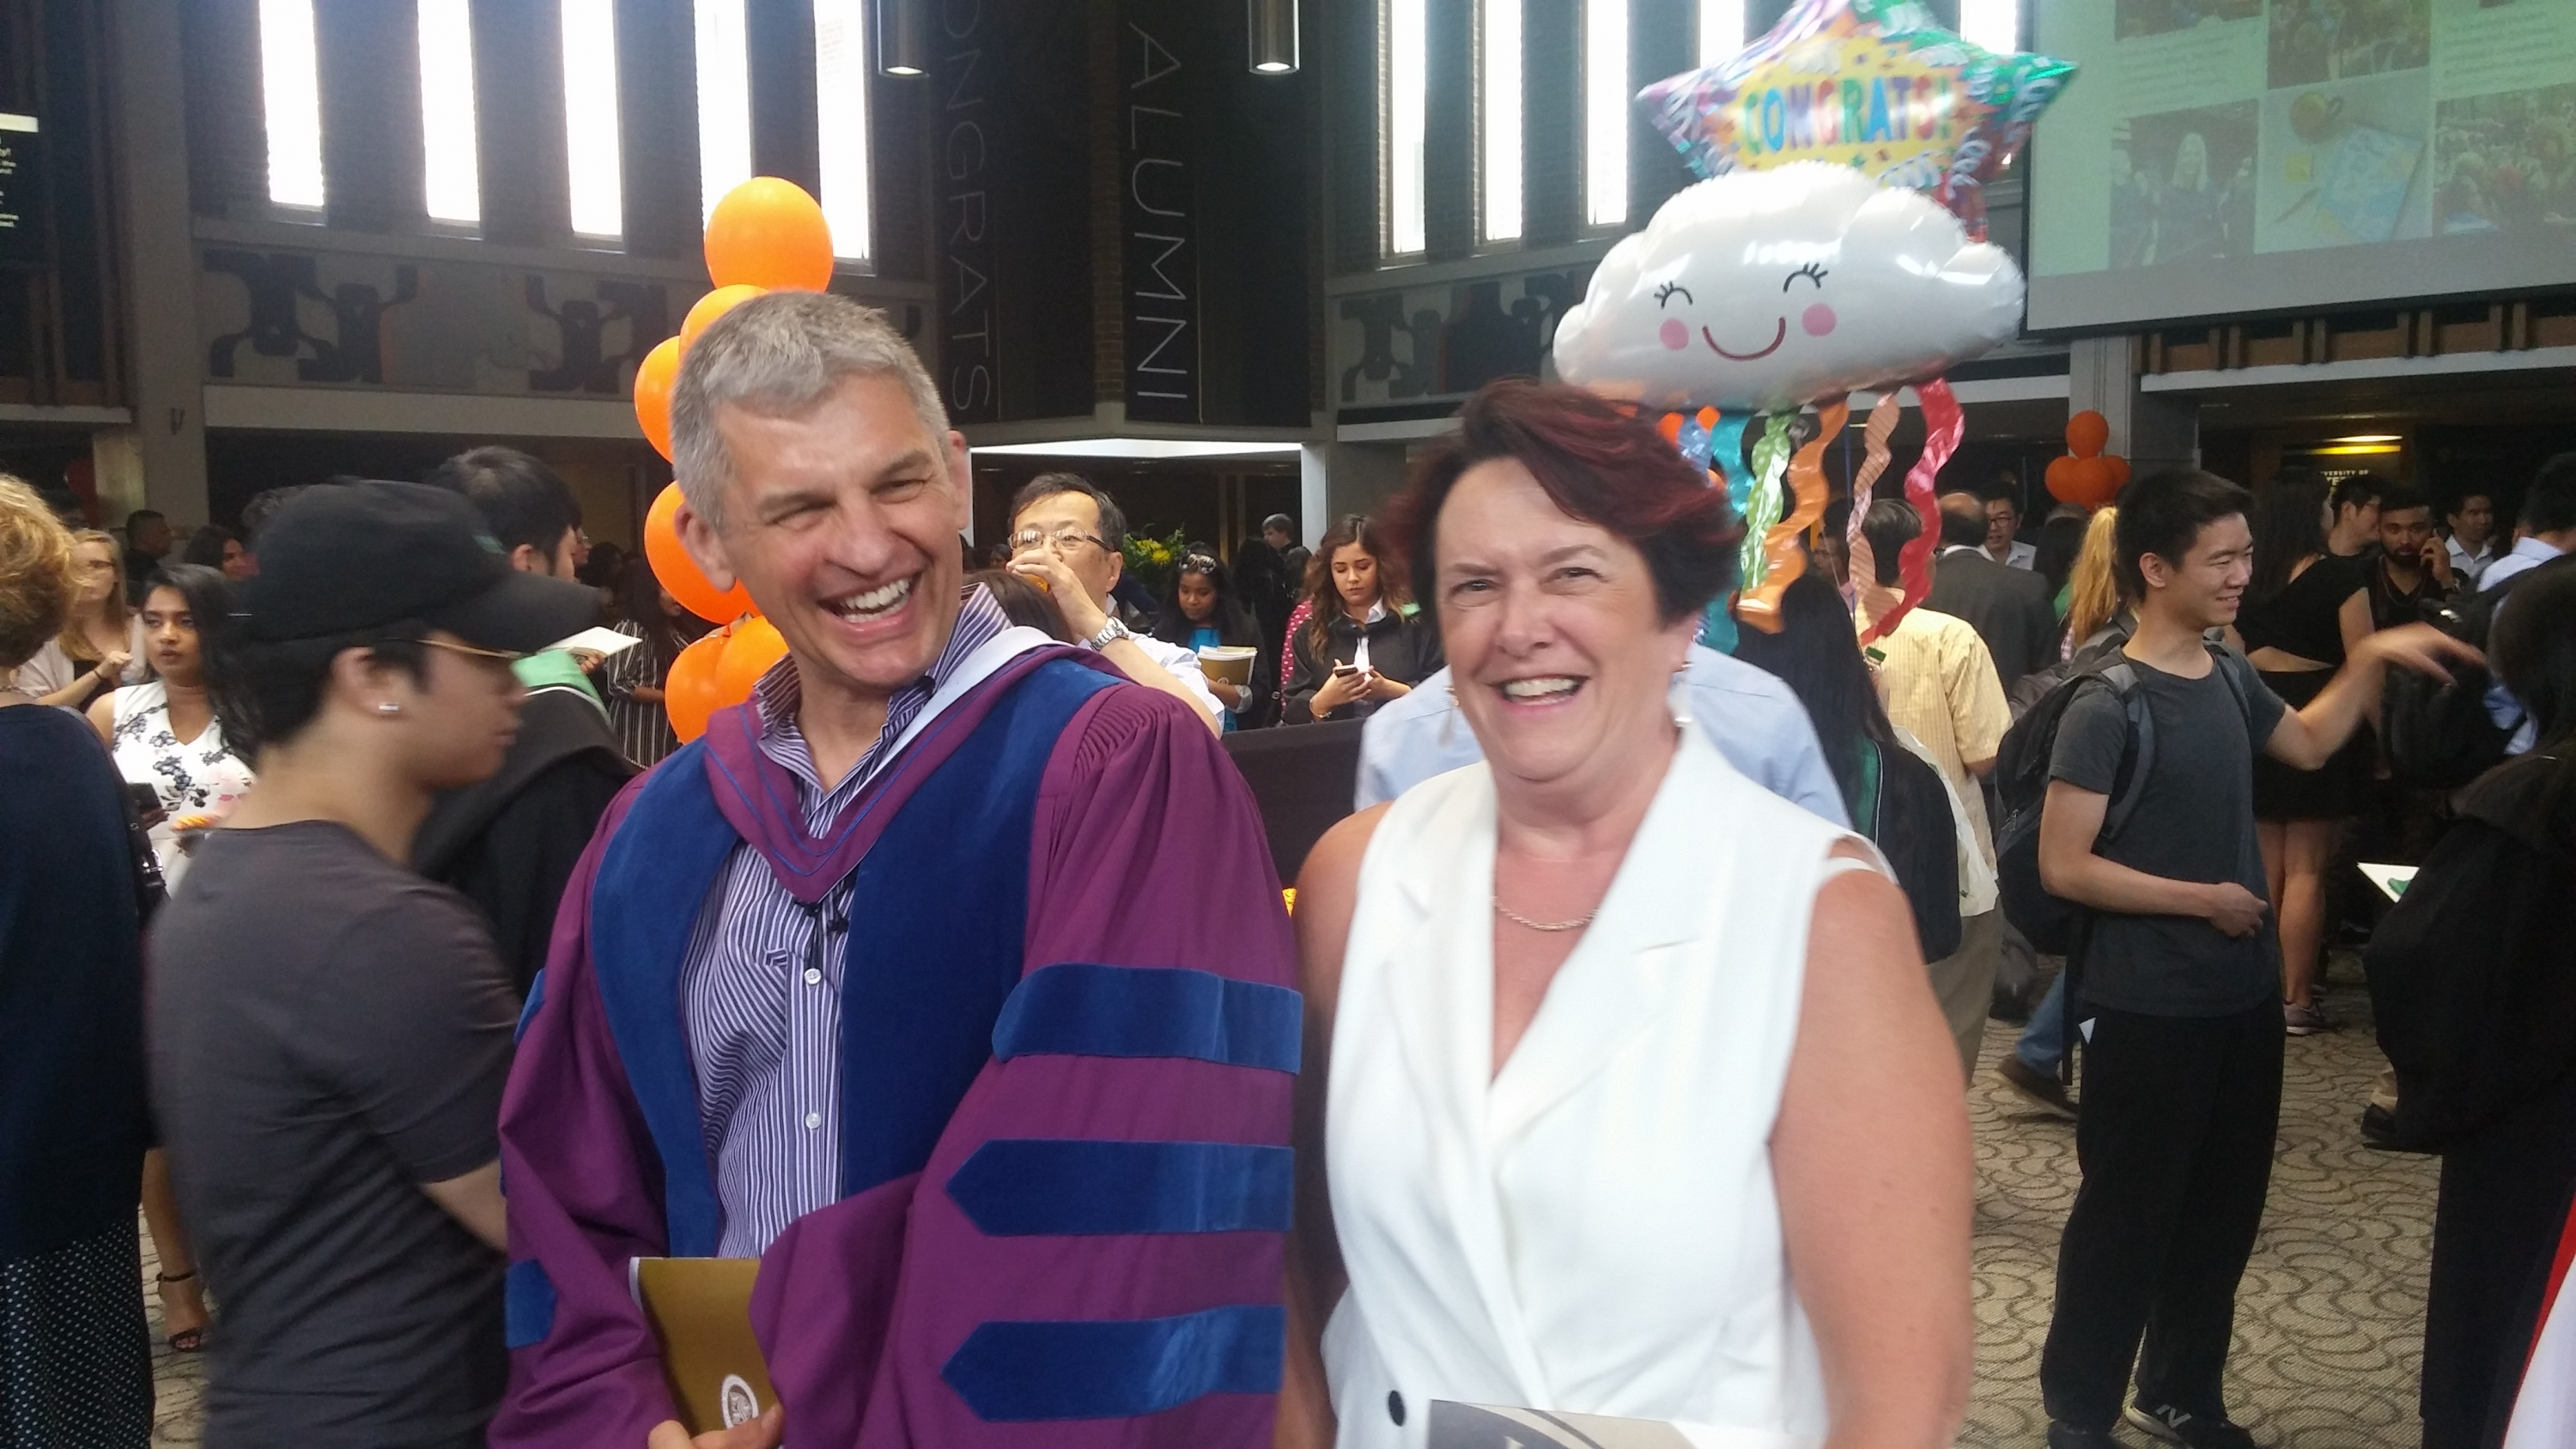 Dave and Debbie at Spring Convocation